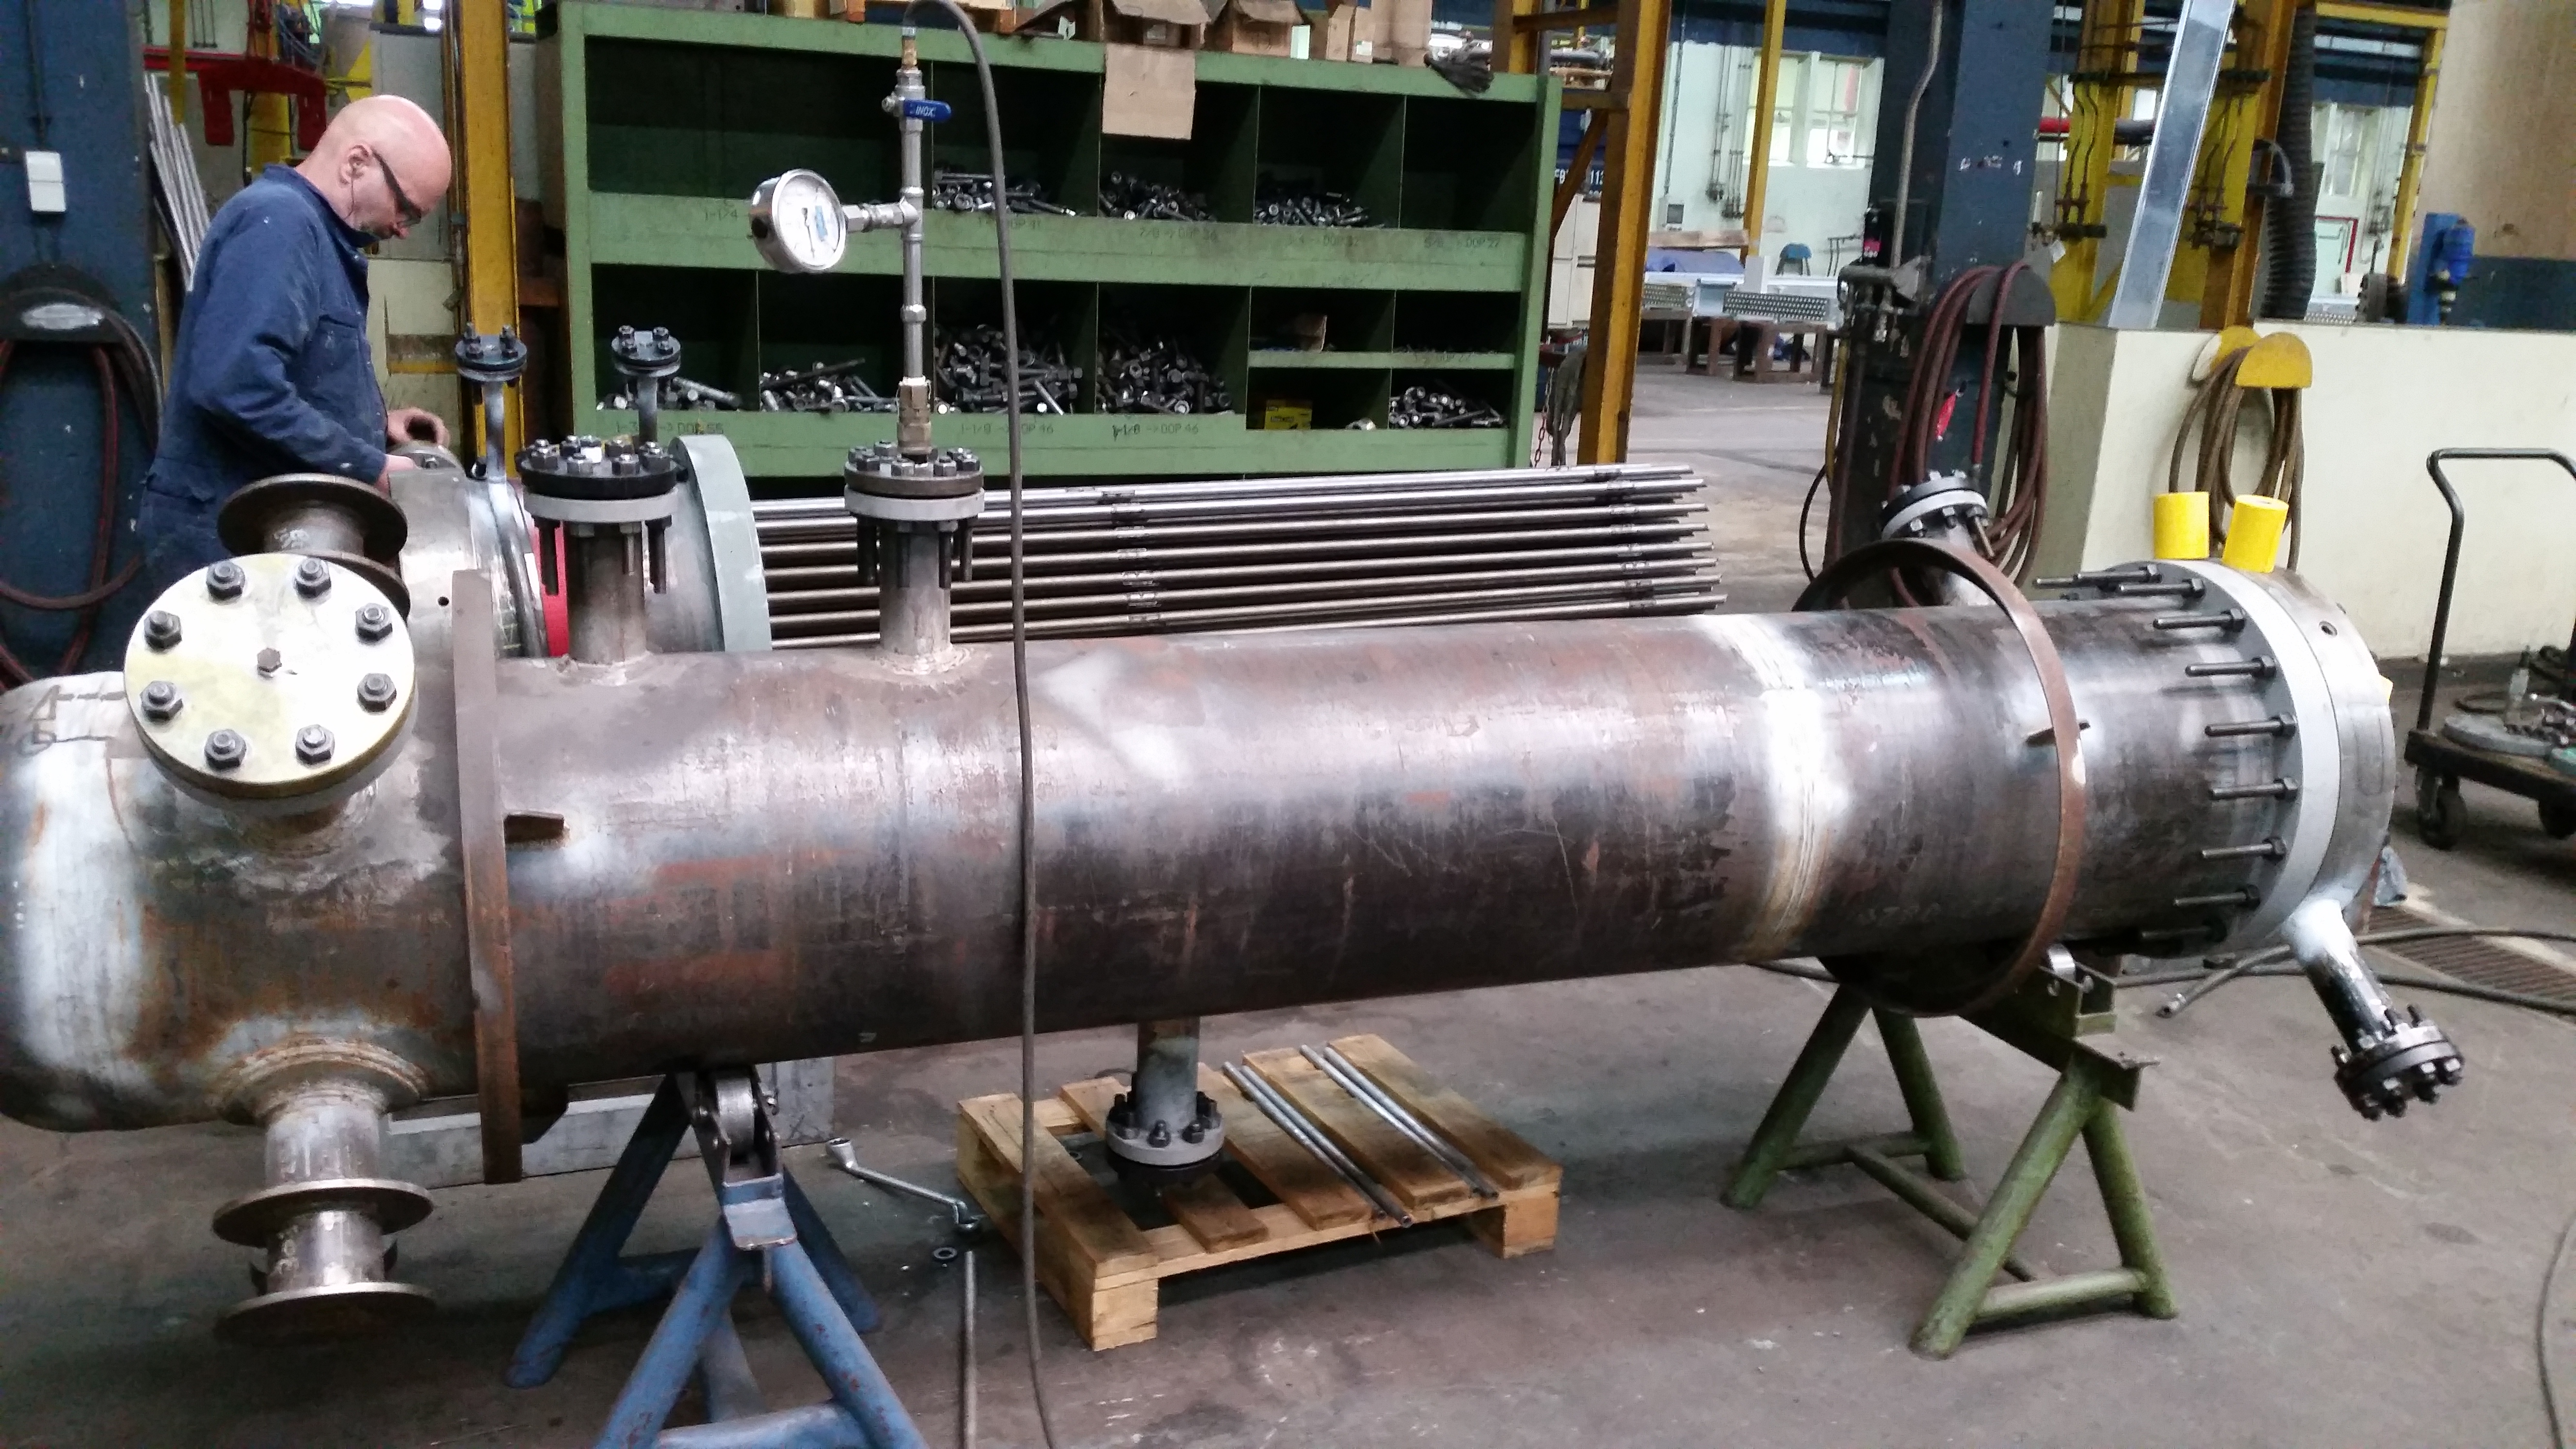 Working on a bayonet heat exchanger